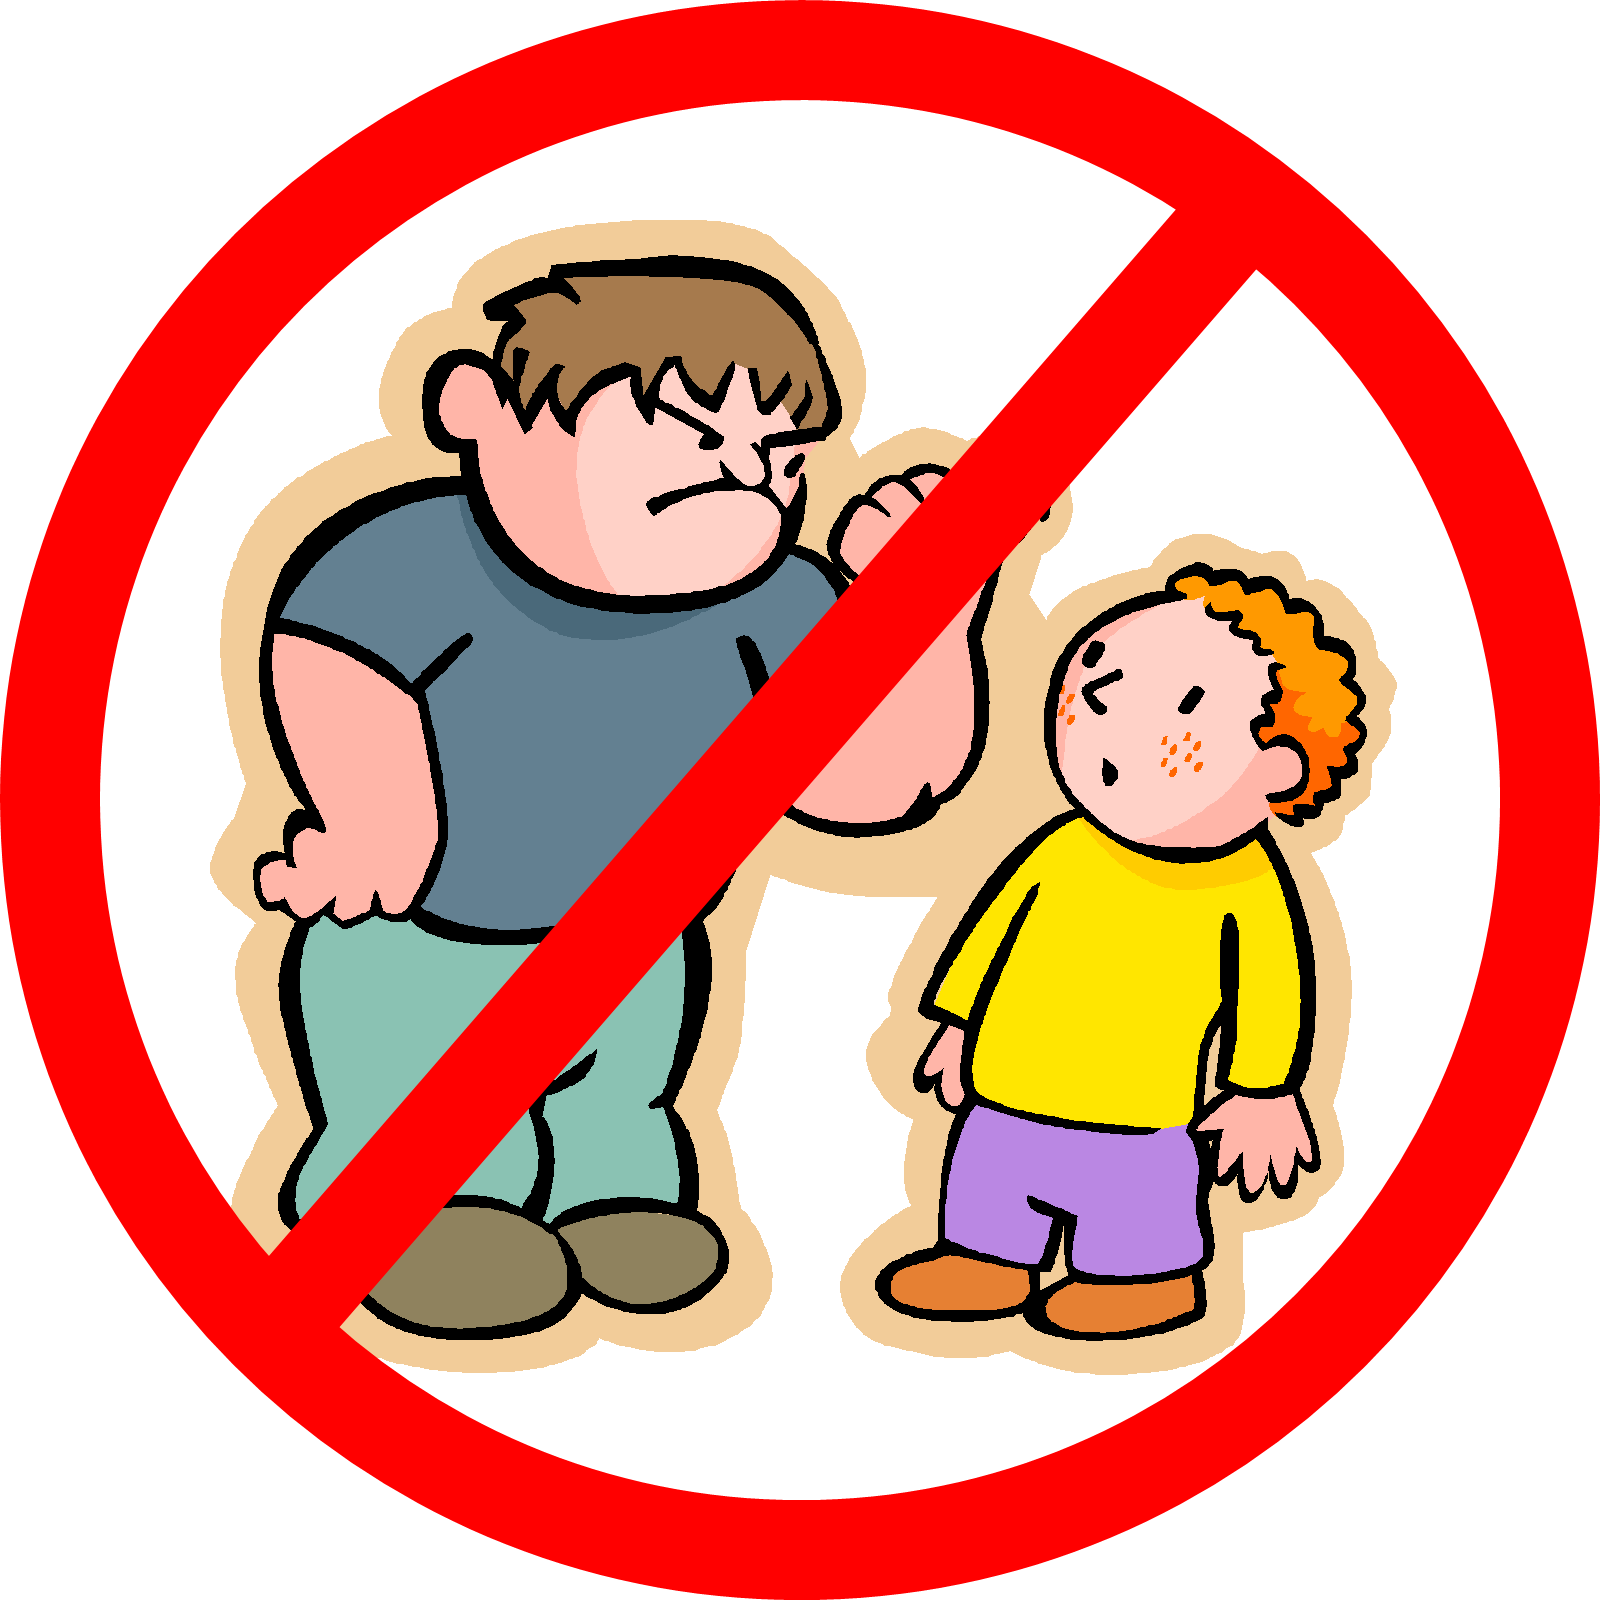 Cyberbullying Clipart - Clipart Library-Cyberbullying Clipart - Clipart library-11